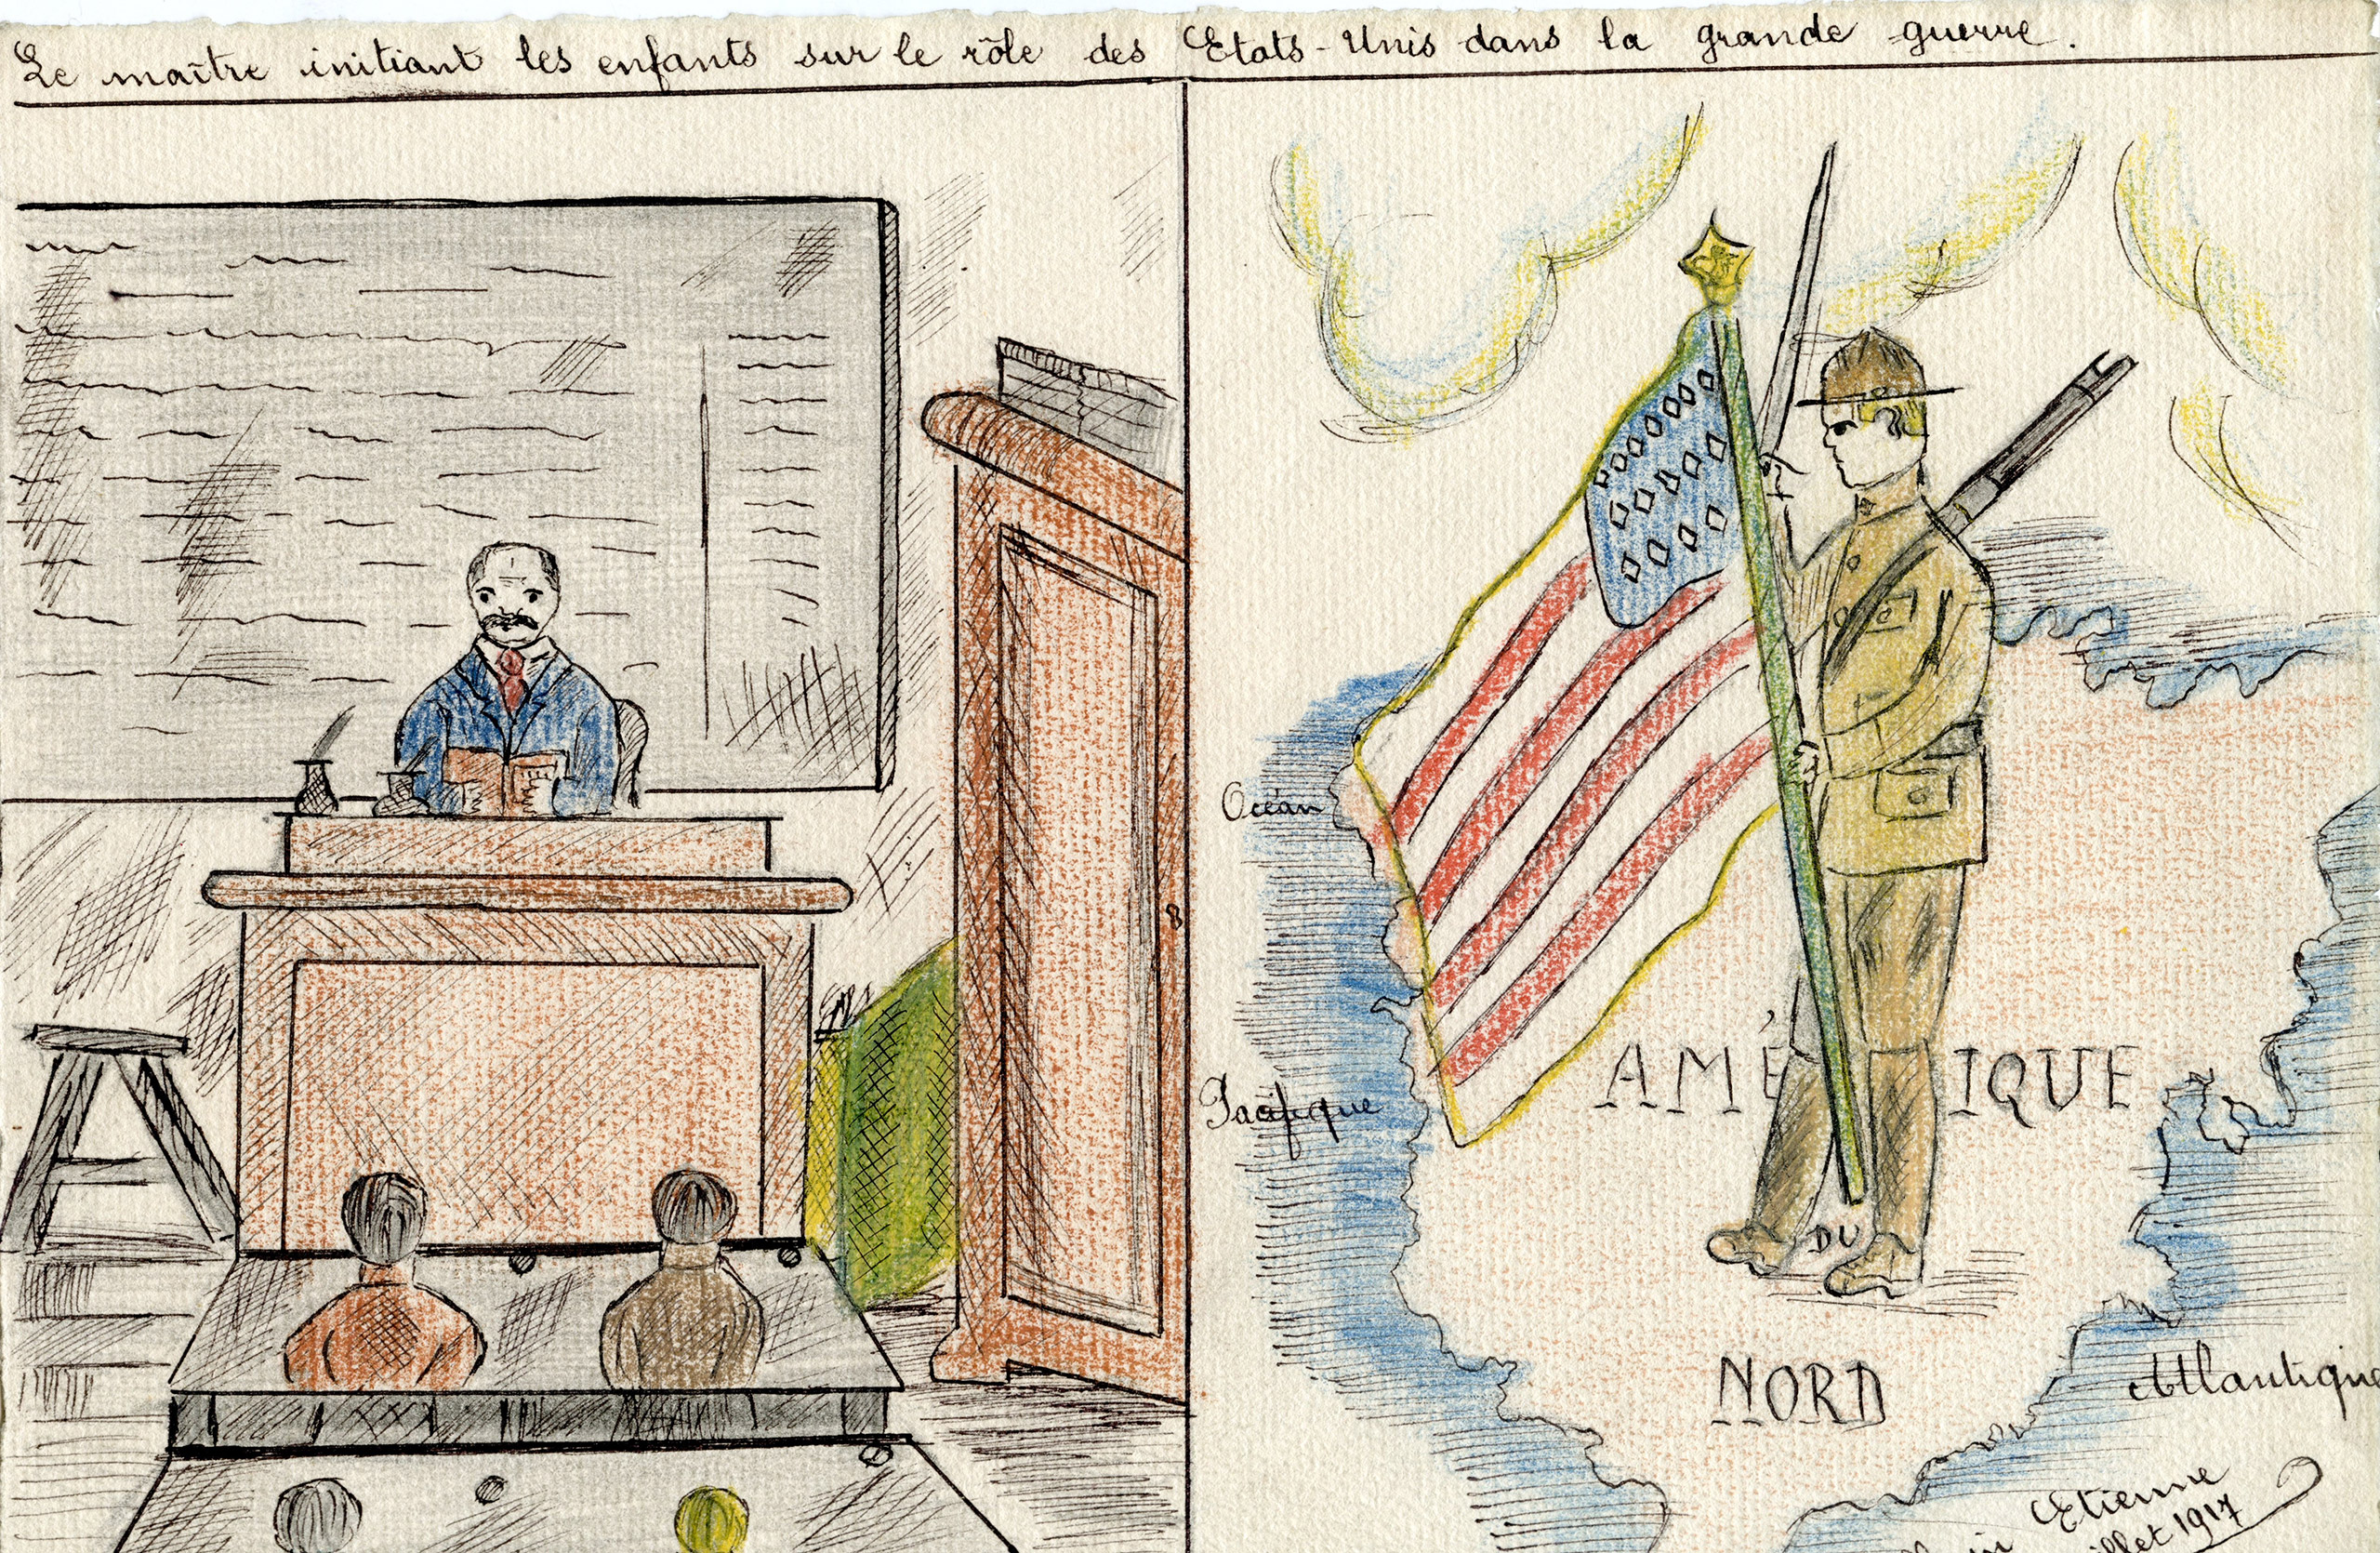 The role of the public school was pivotal in educating students on how to be model French citizens. It also provided them the opportunity to express how the war impacted their lives through the act of drawing.